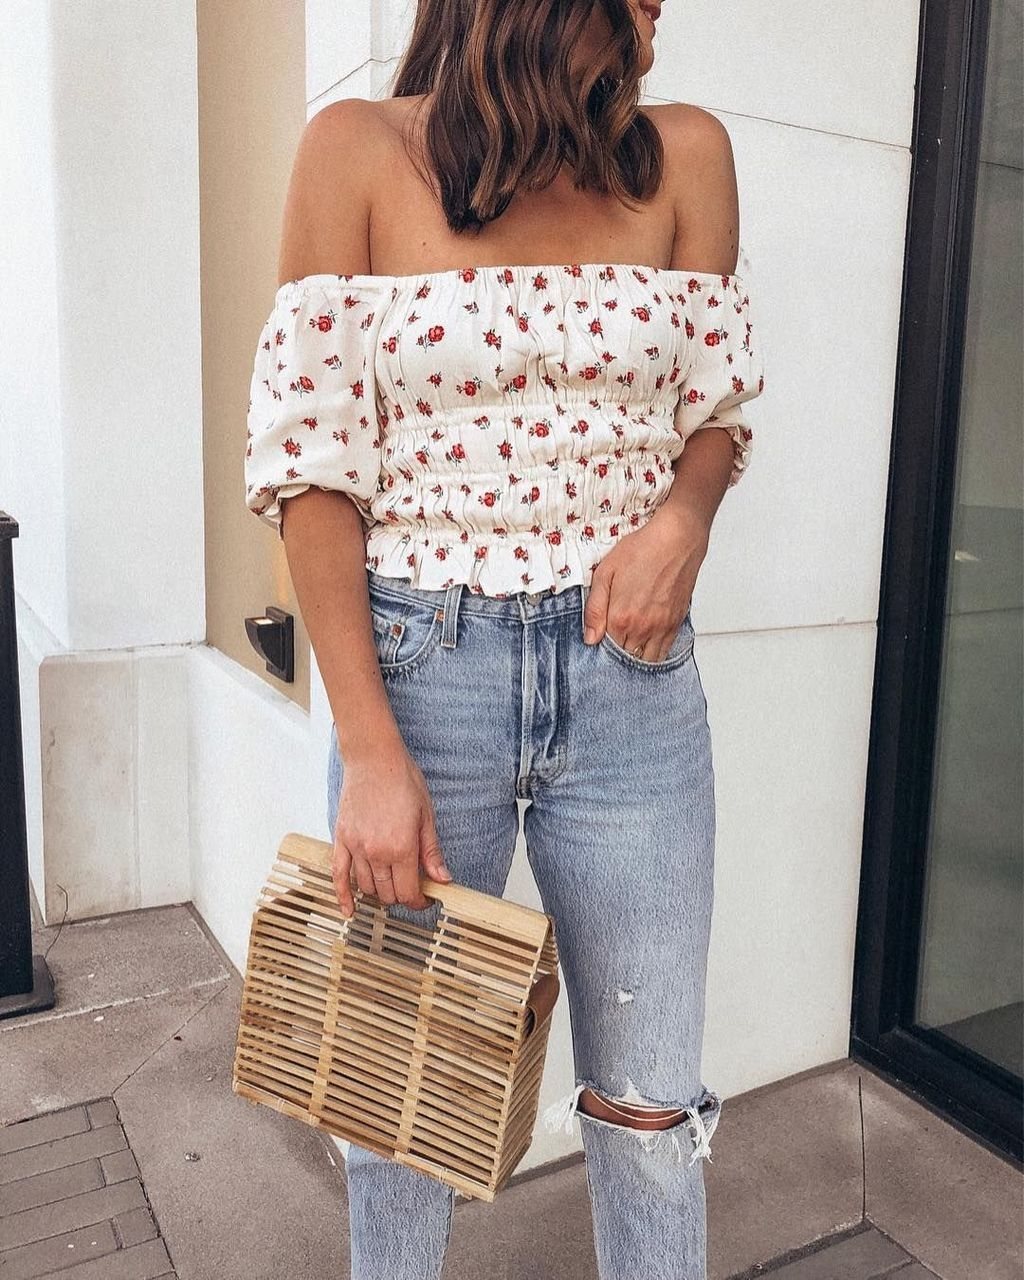 d28138aba9c38 Cool 35 Cute Girly Fashion Outfits Ideas For Summer. More at https://